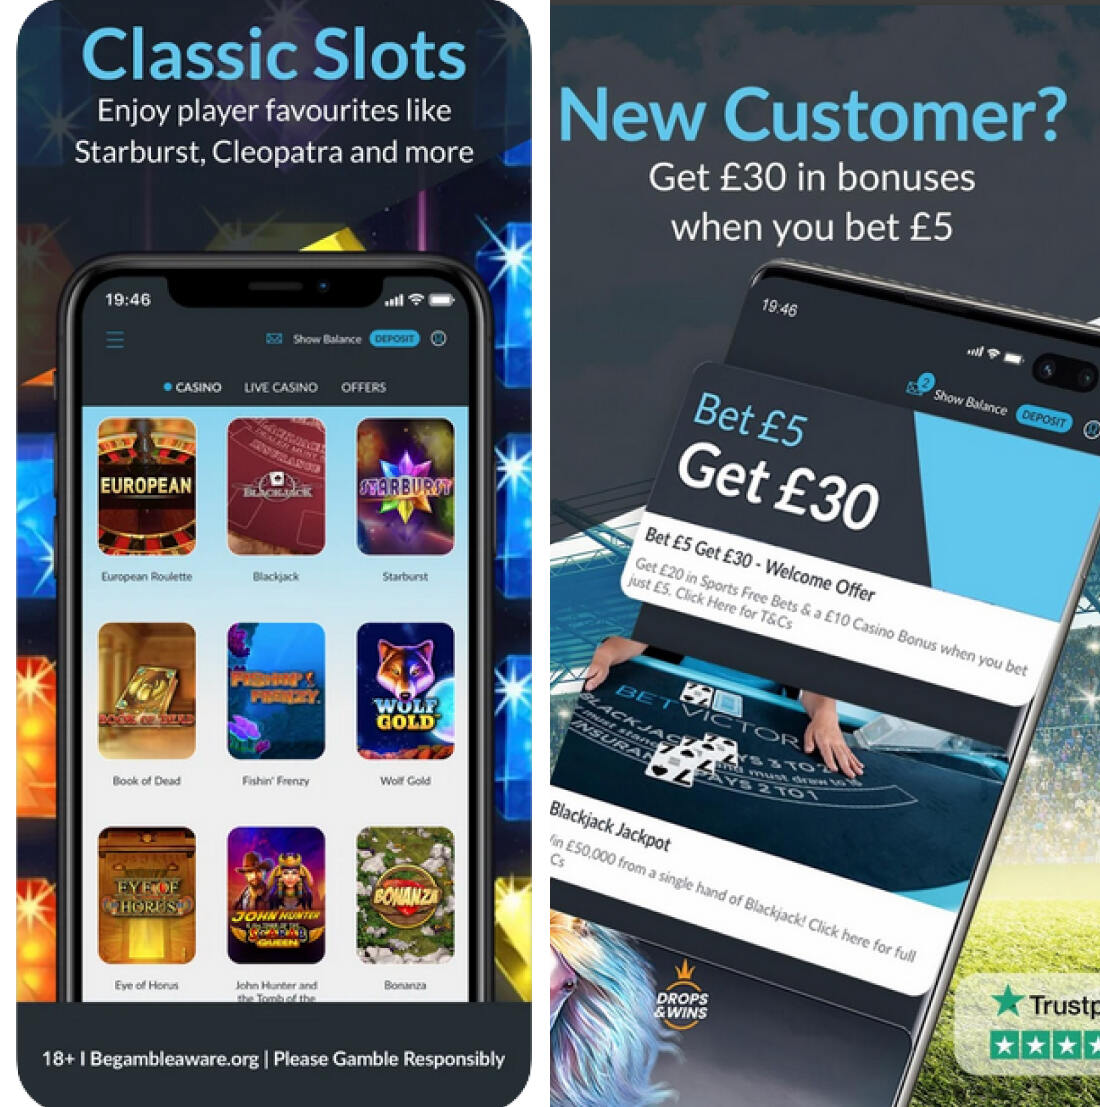 BetVictor image